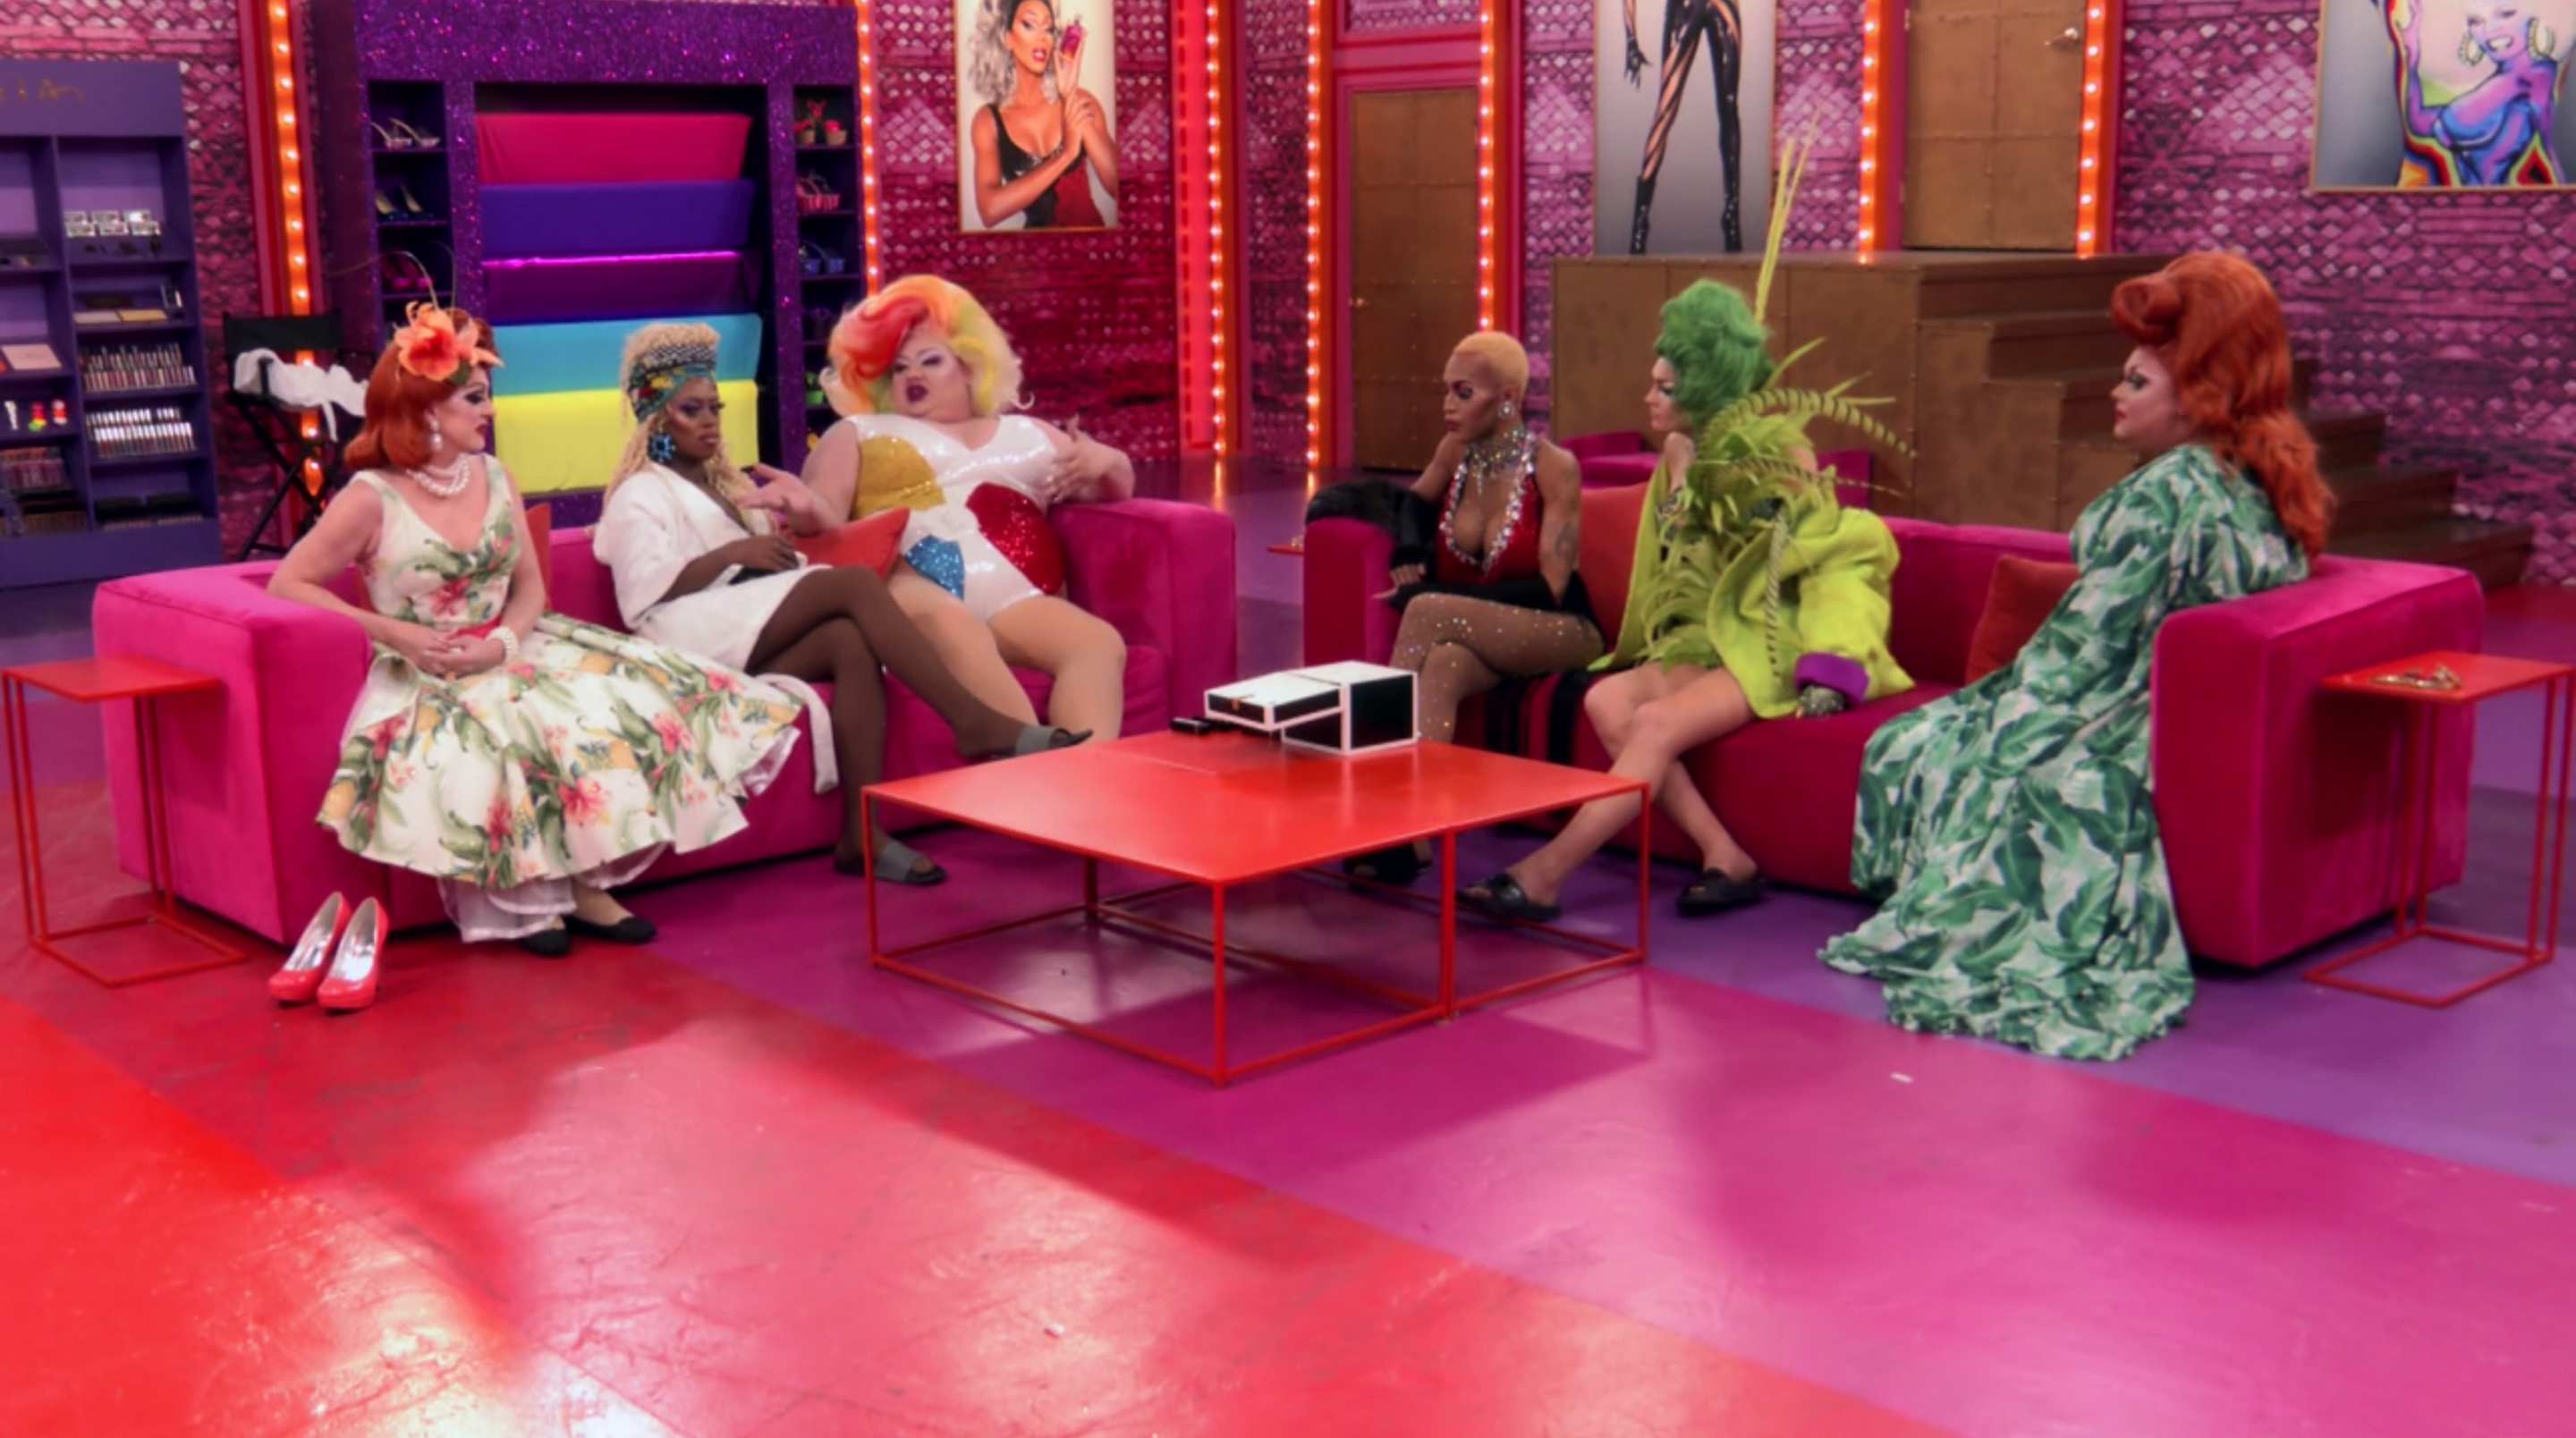 The girls discussing Jan's elimination.